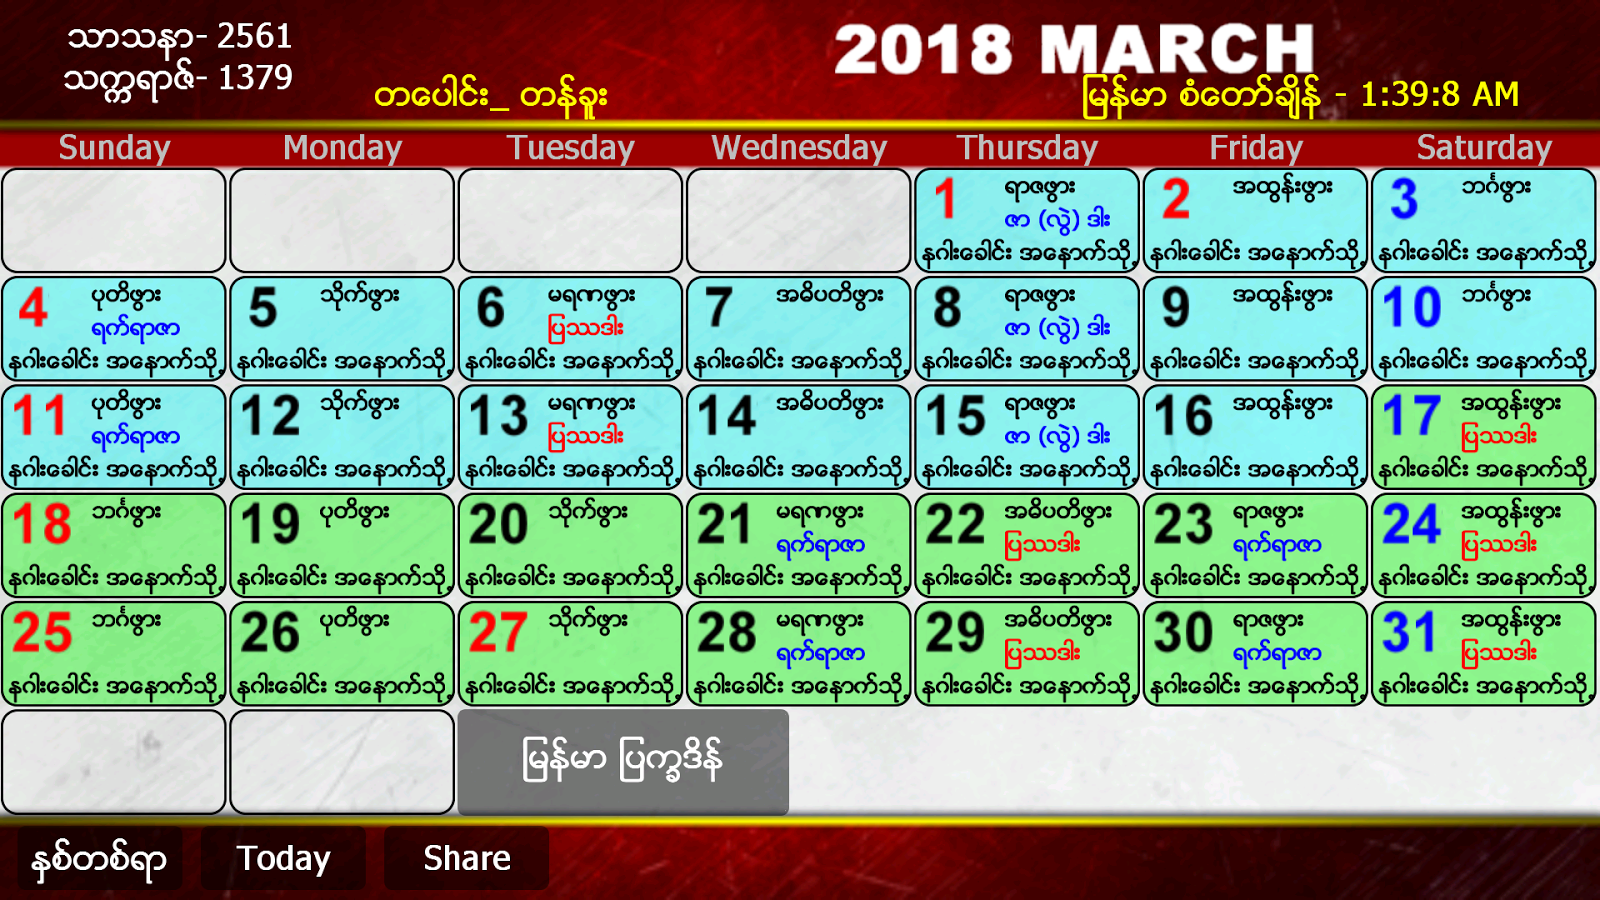 Hindu Calendar March 2018 Print